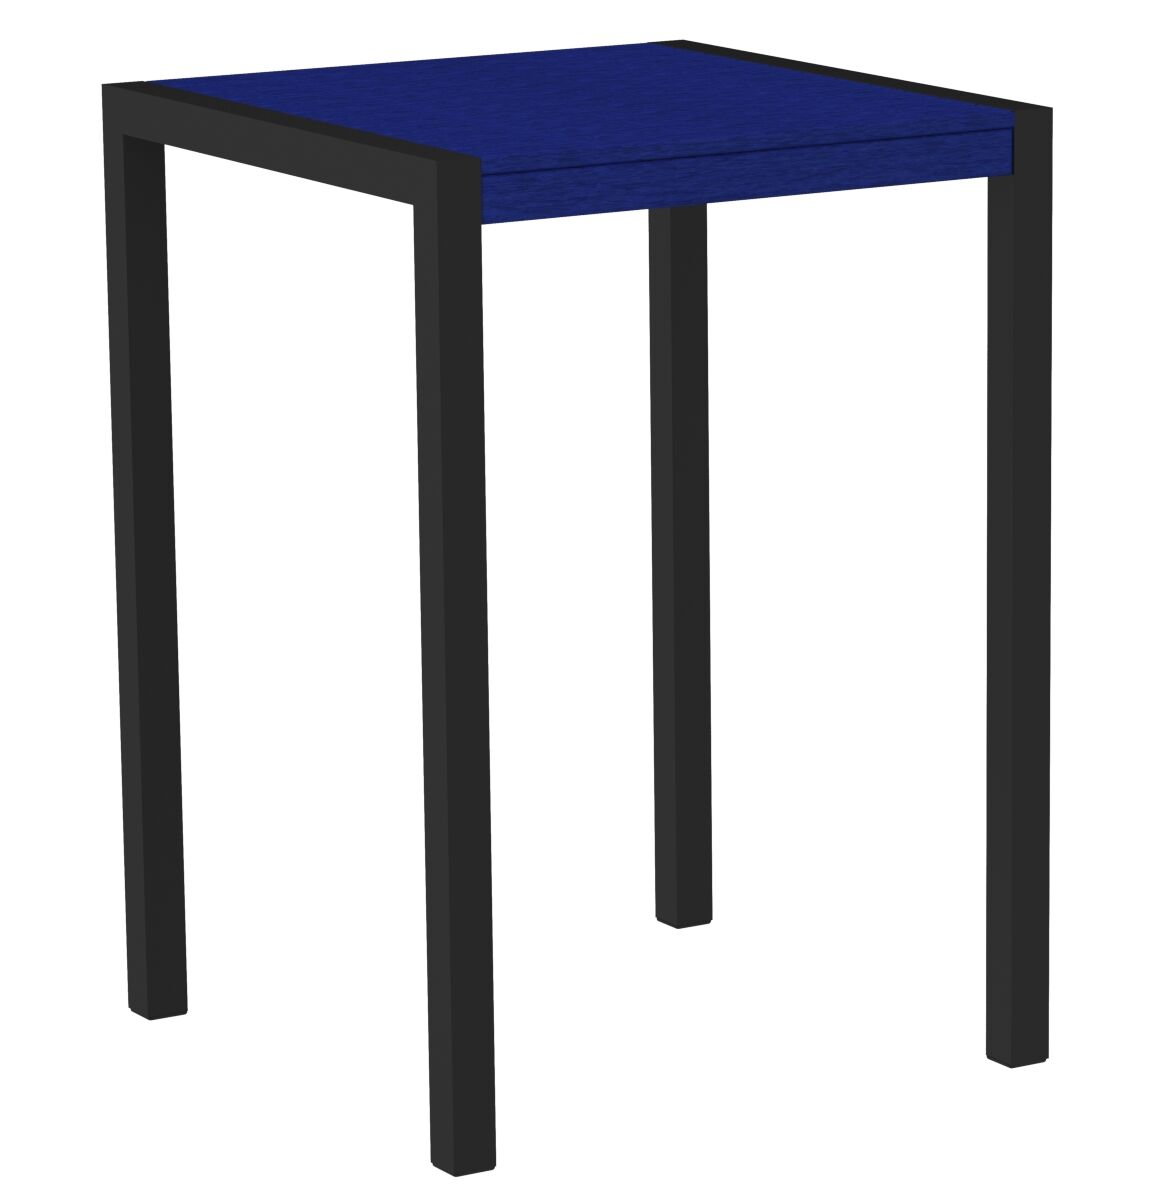 Mod Bar Table Base Finish: Textured Black, Top Finish: Pacific Blue